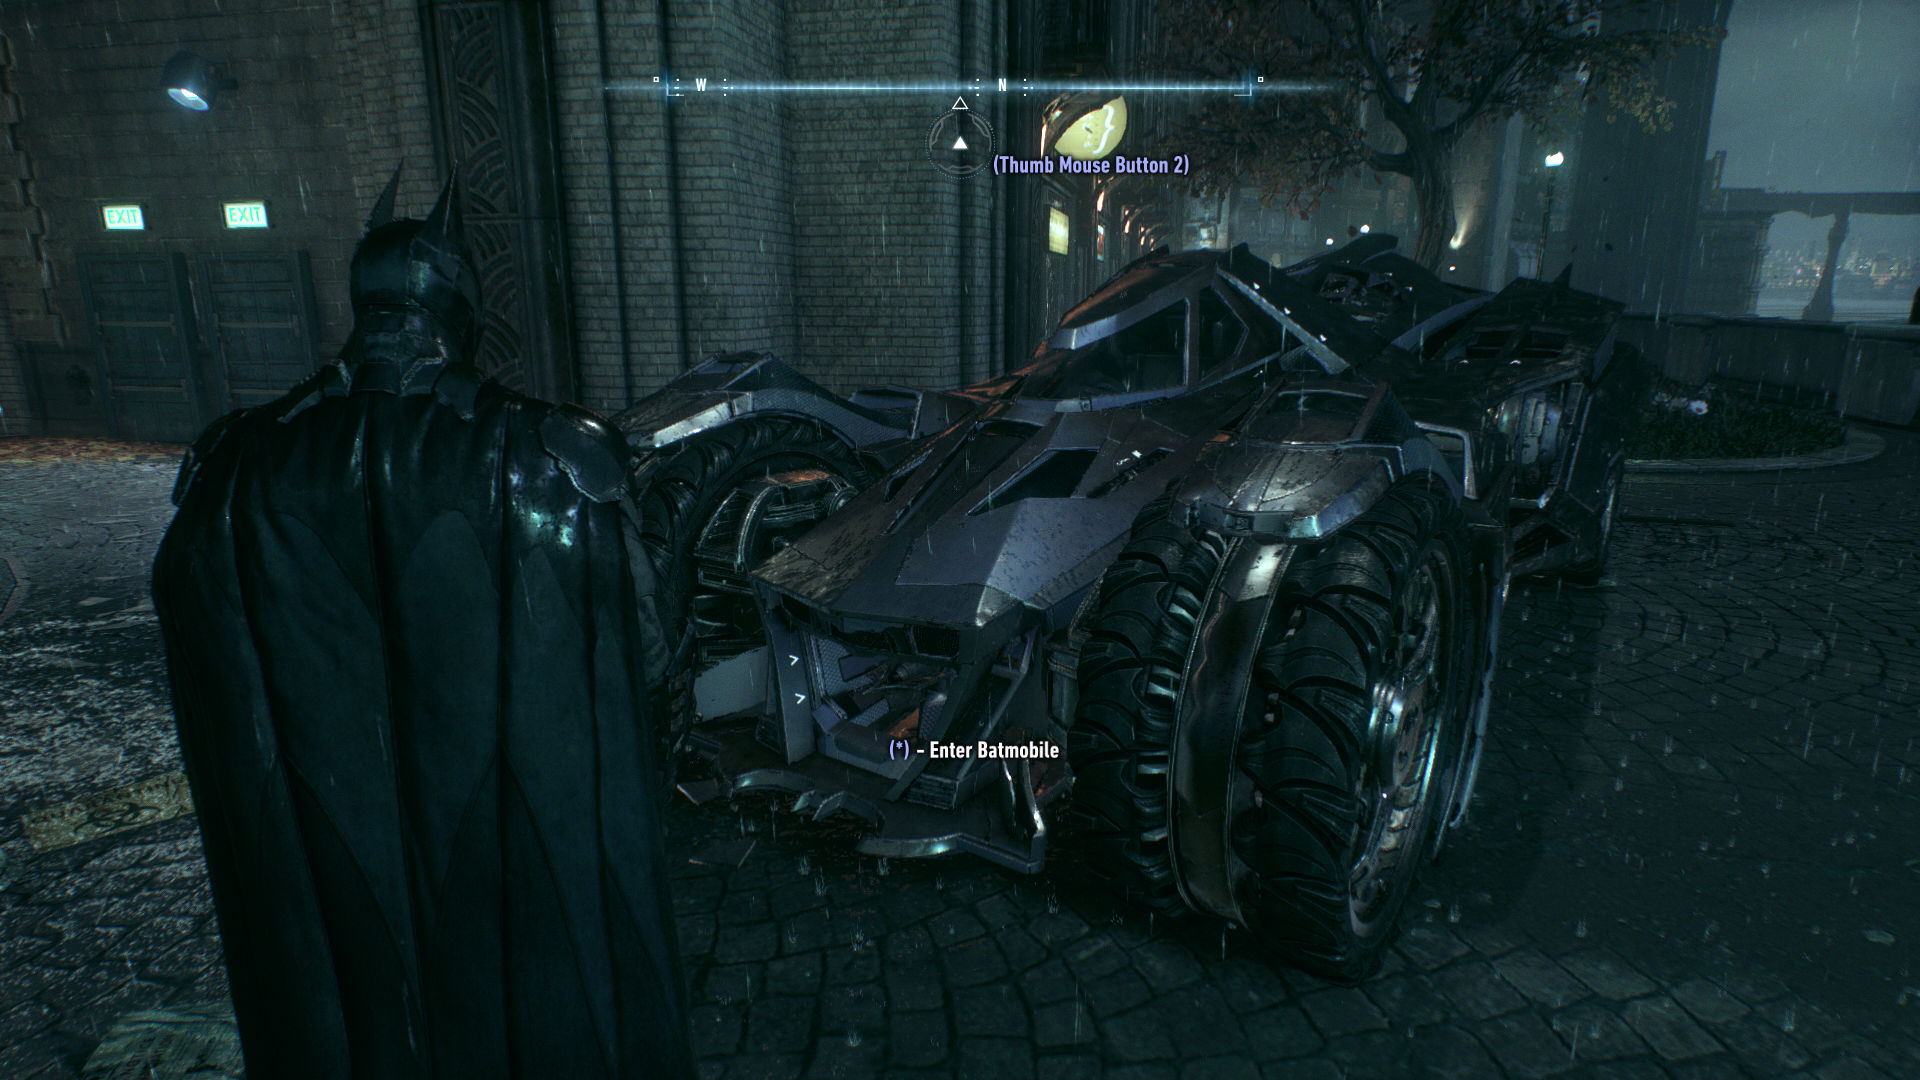 Batman standing besides the Batmobile